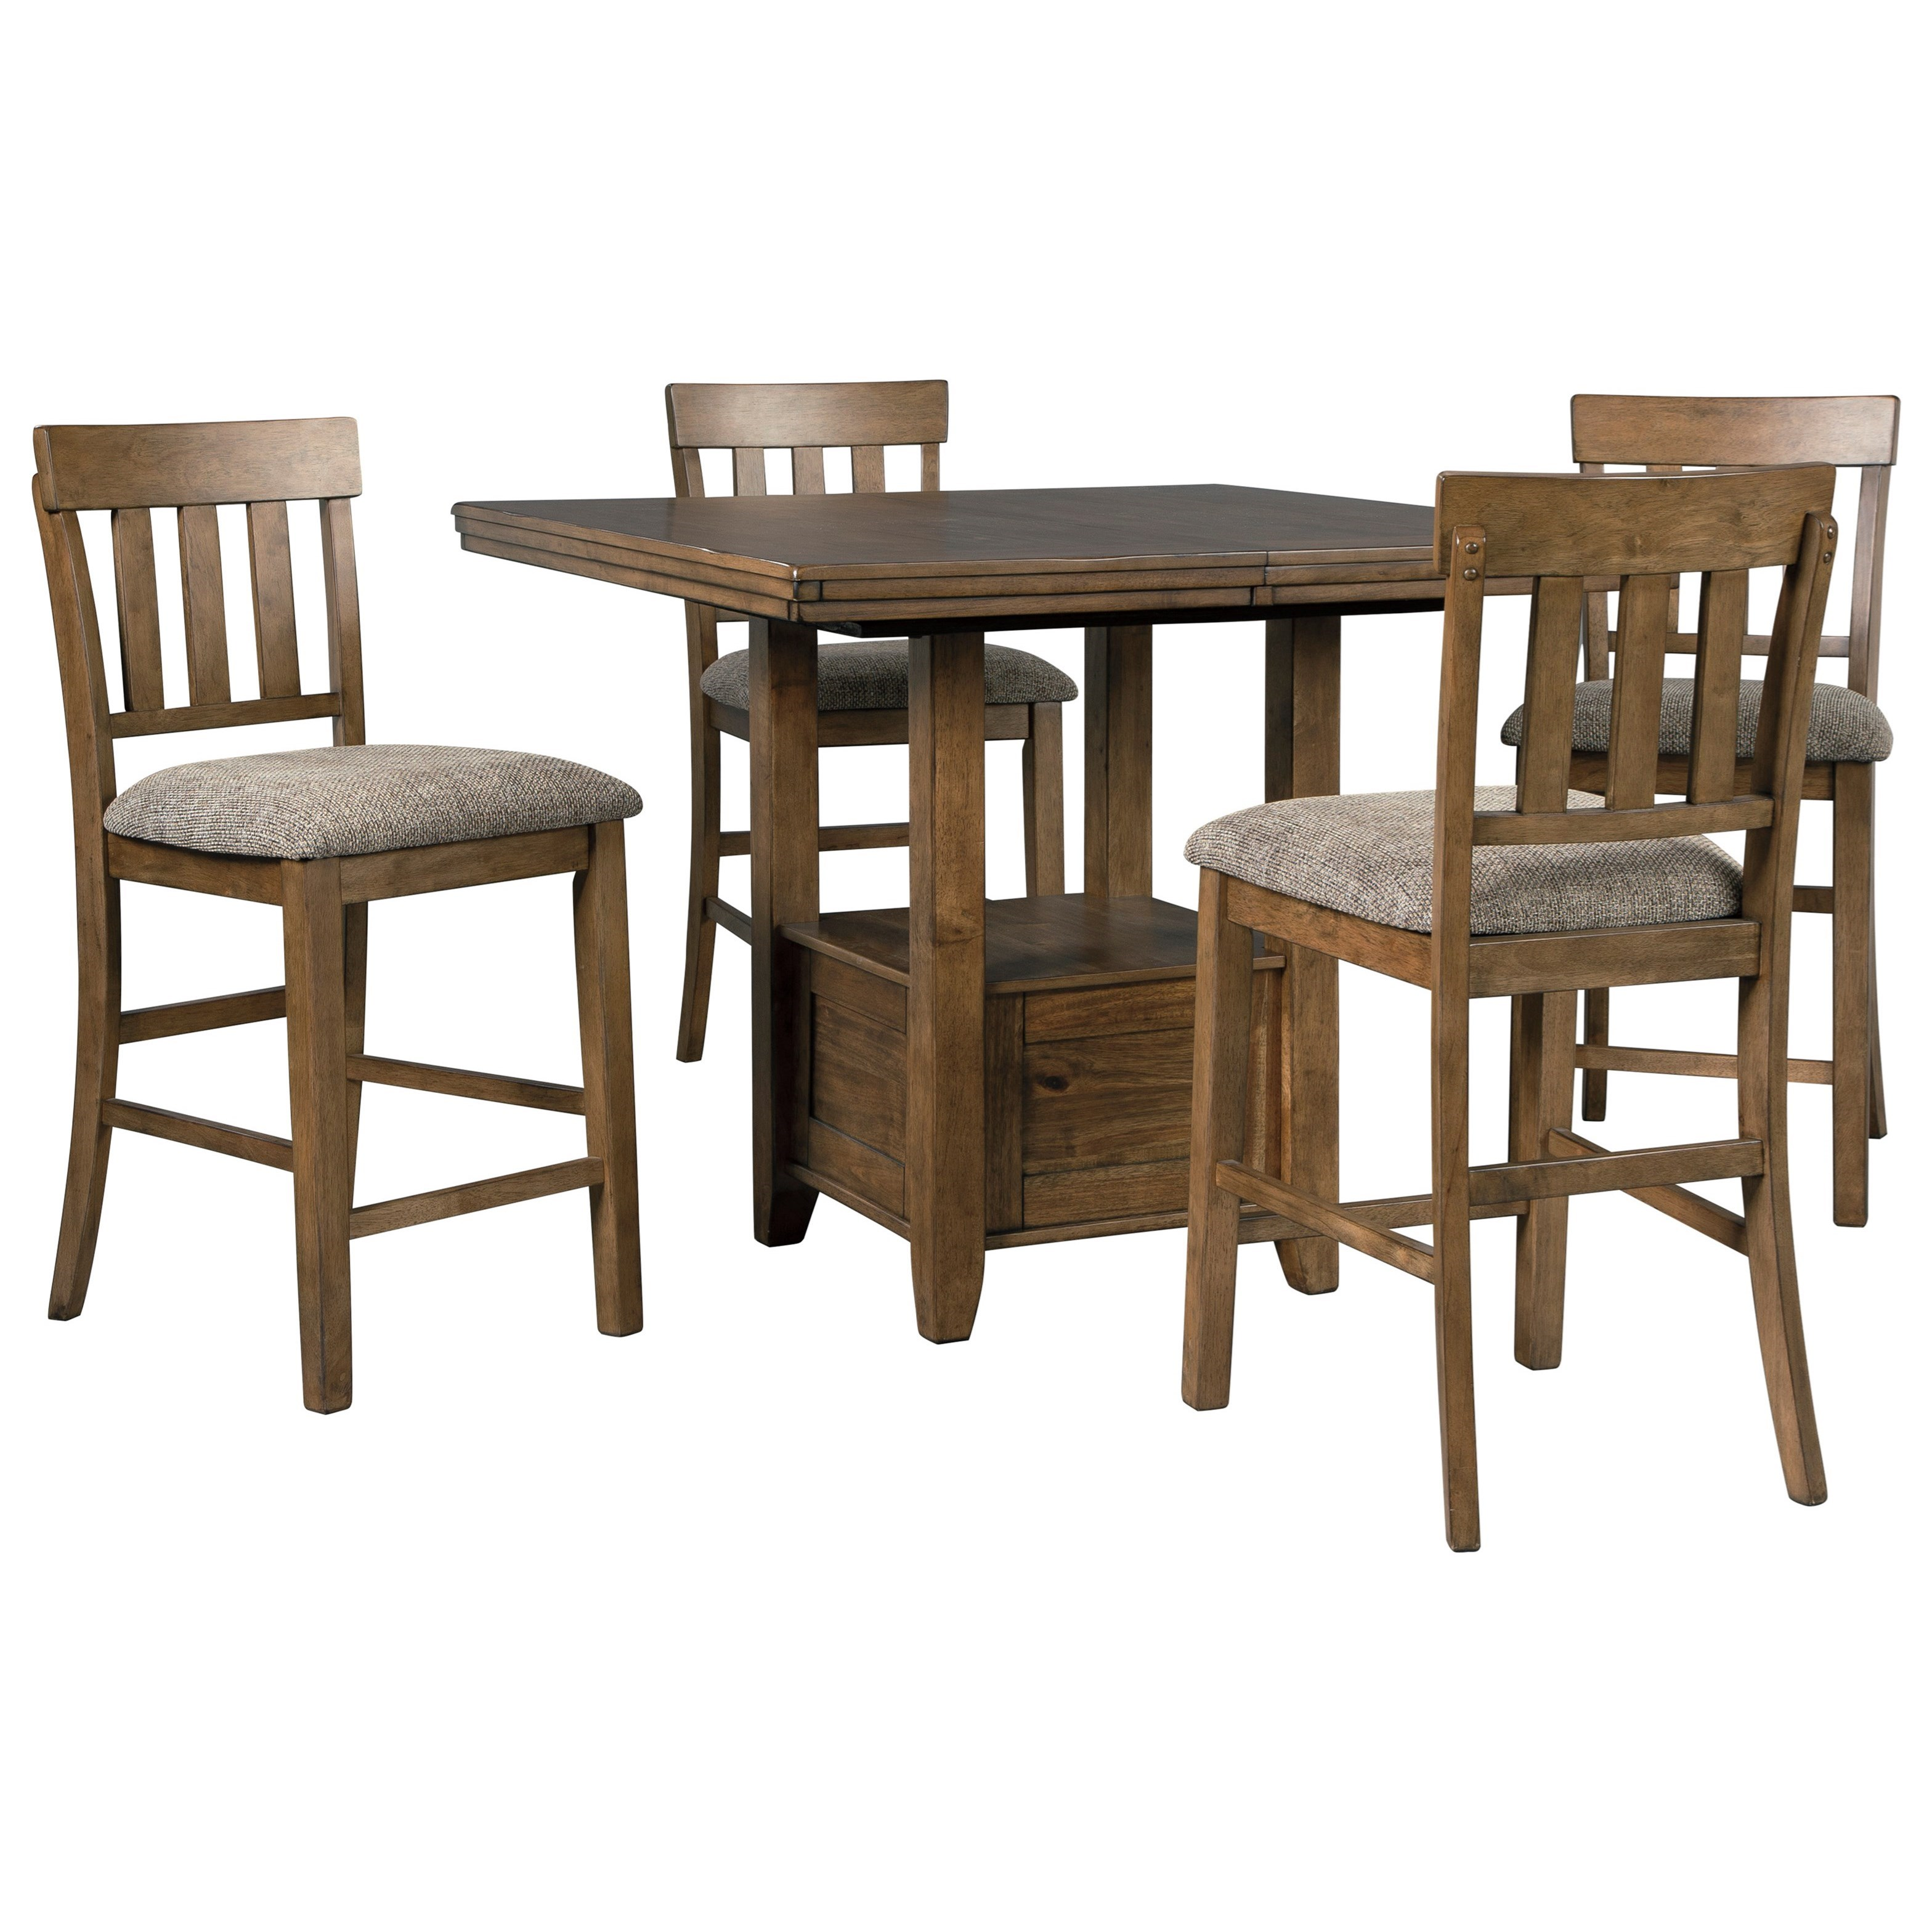 Flaybern 5-Piece Counter Table Set by Benchcraft at Walker's Furniture